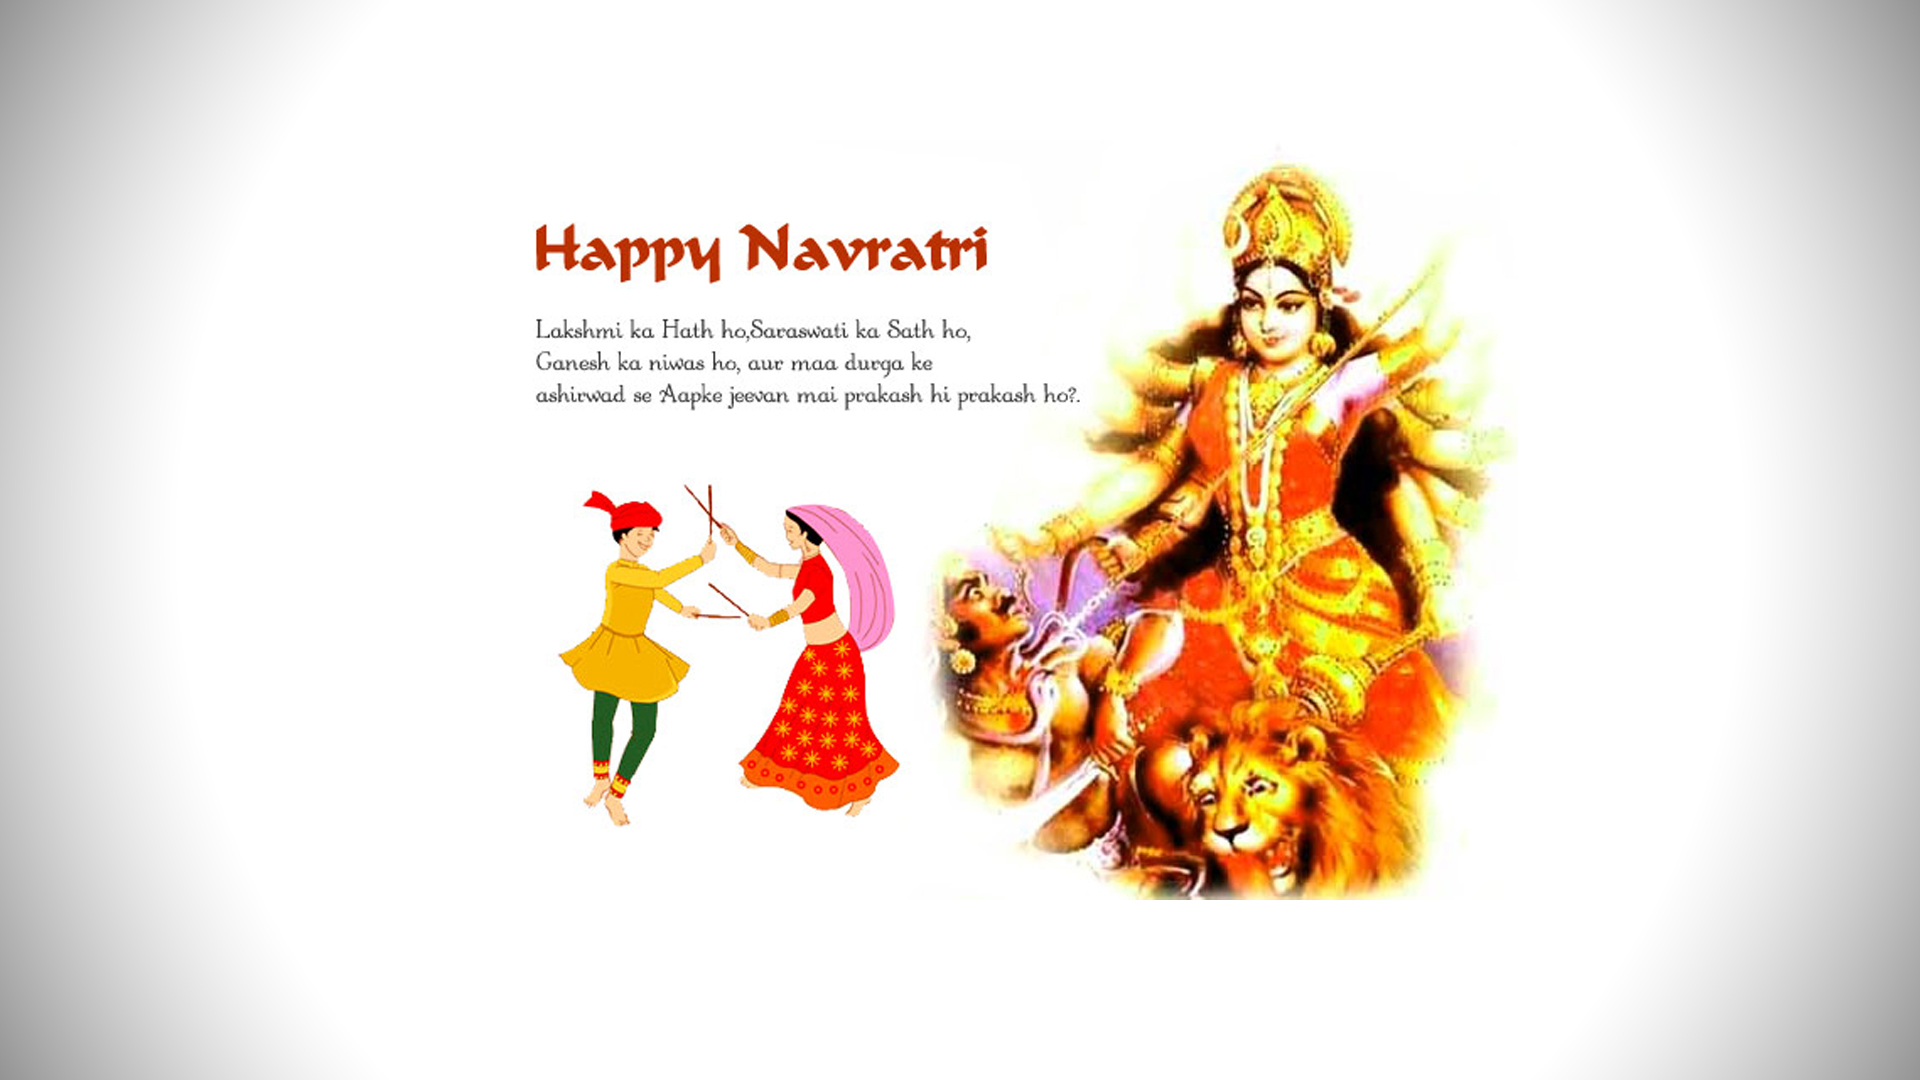 navratri-maa-durga-hd-images-wallpapers-free-download-9